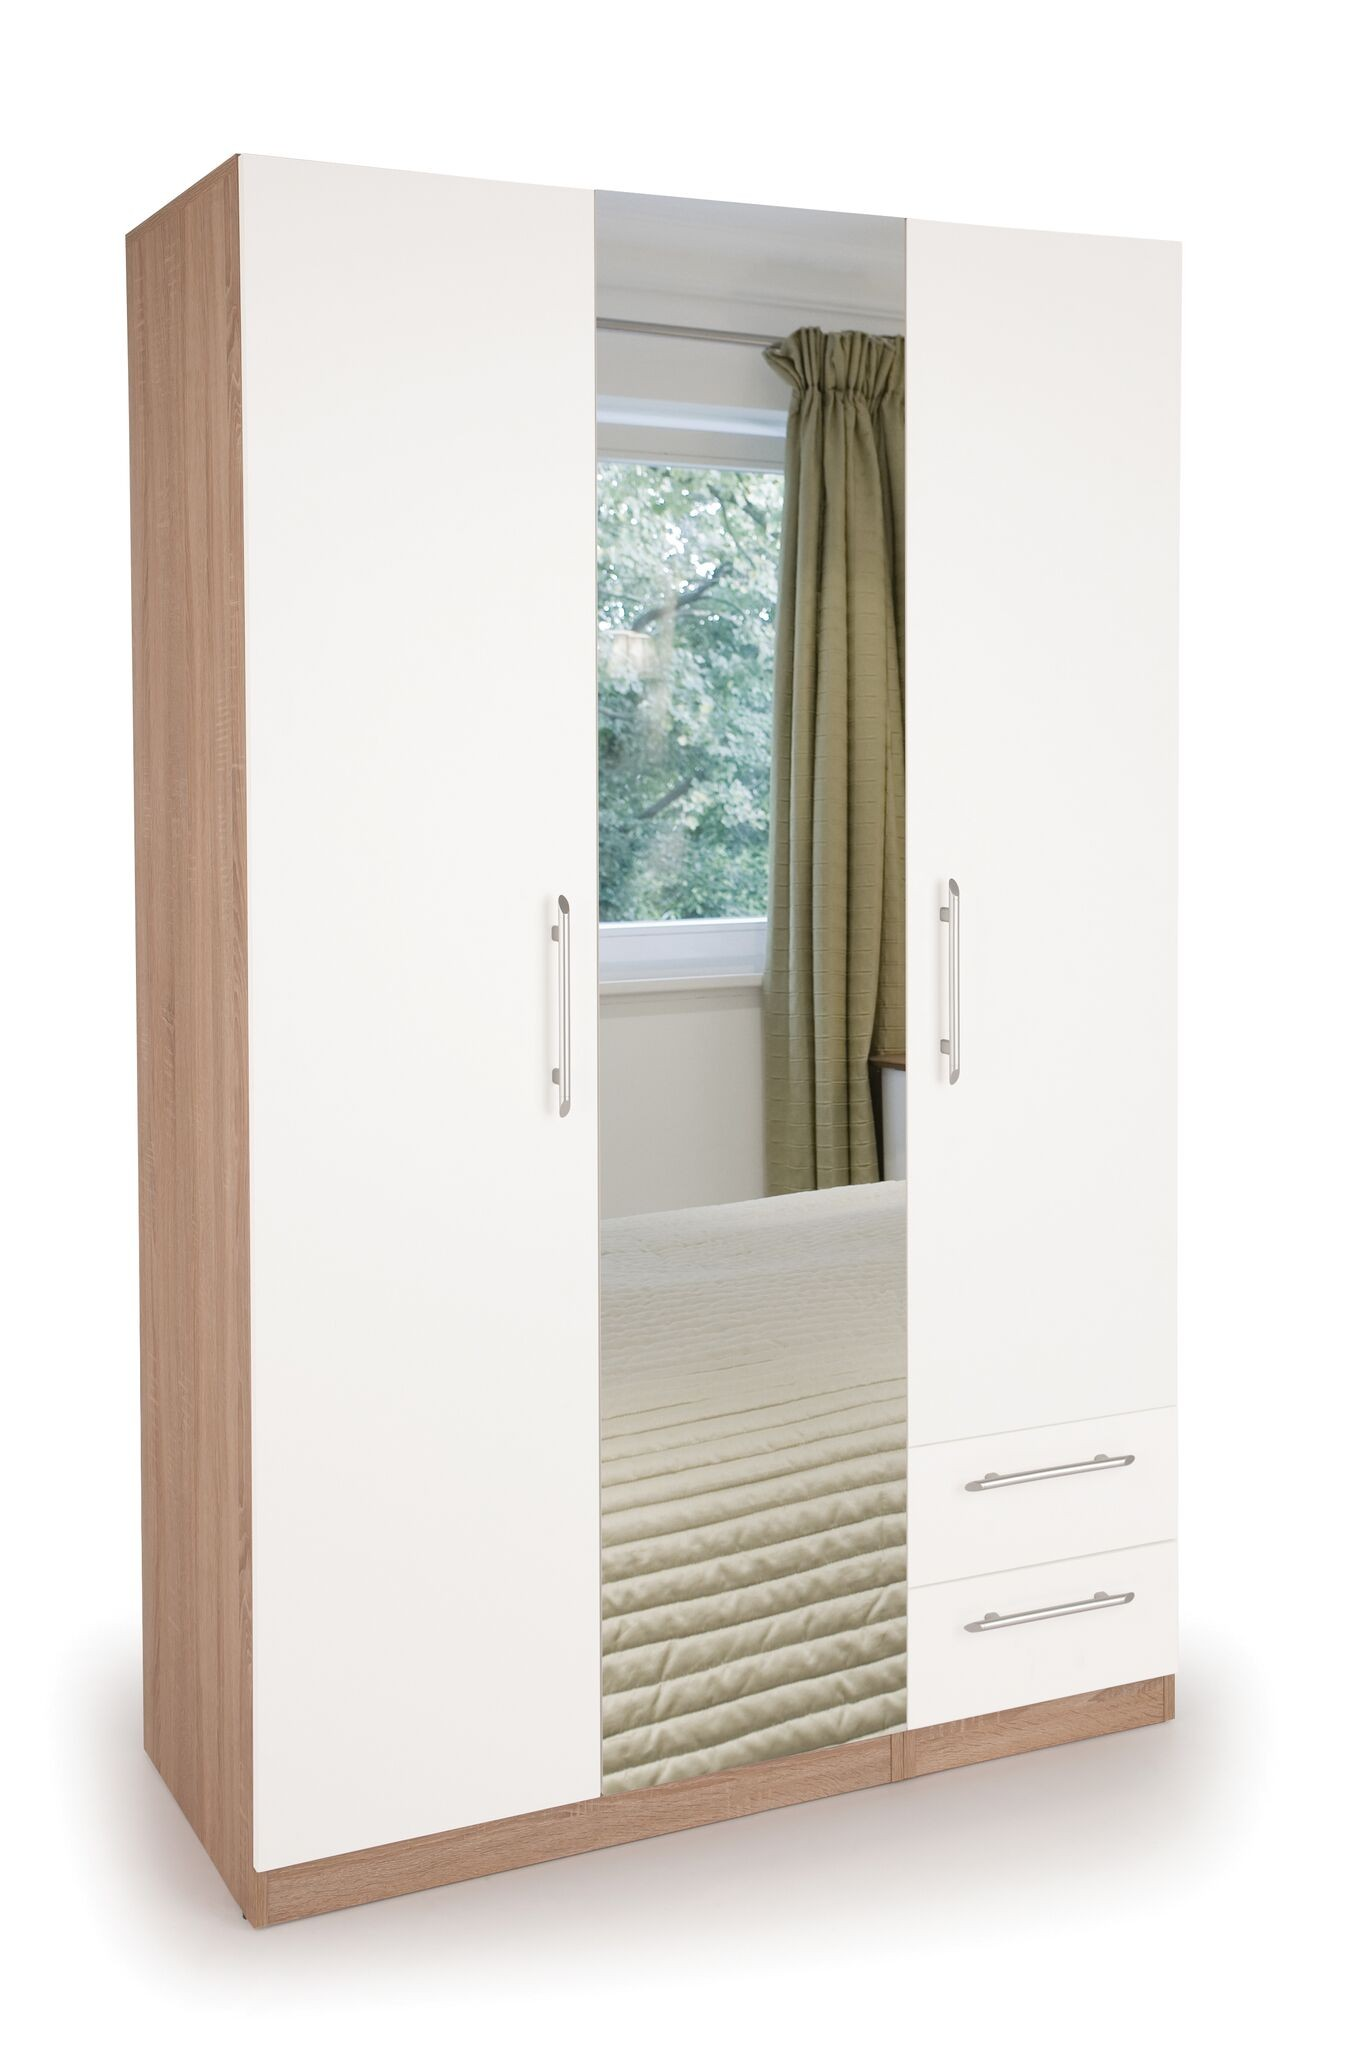 Connect Kew 3 Door Wardrobe with 2 Drawers and Mirror